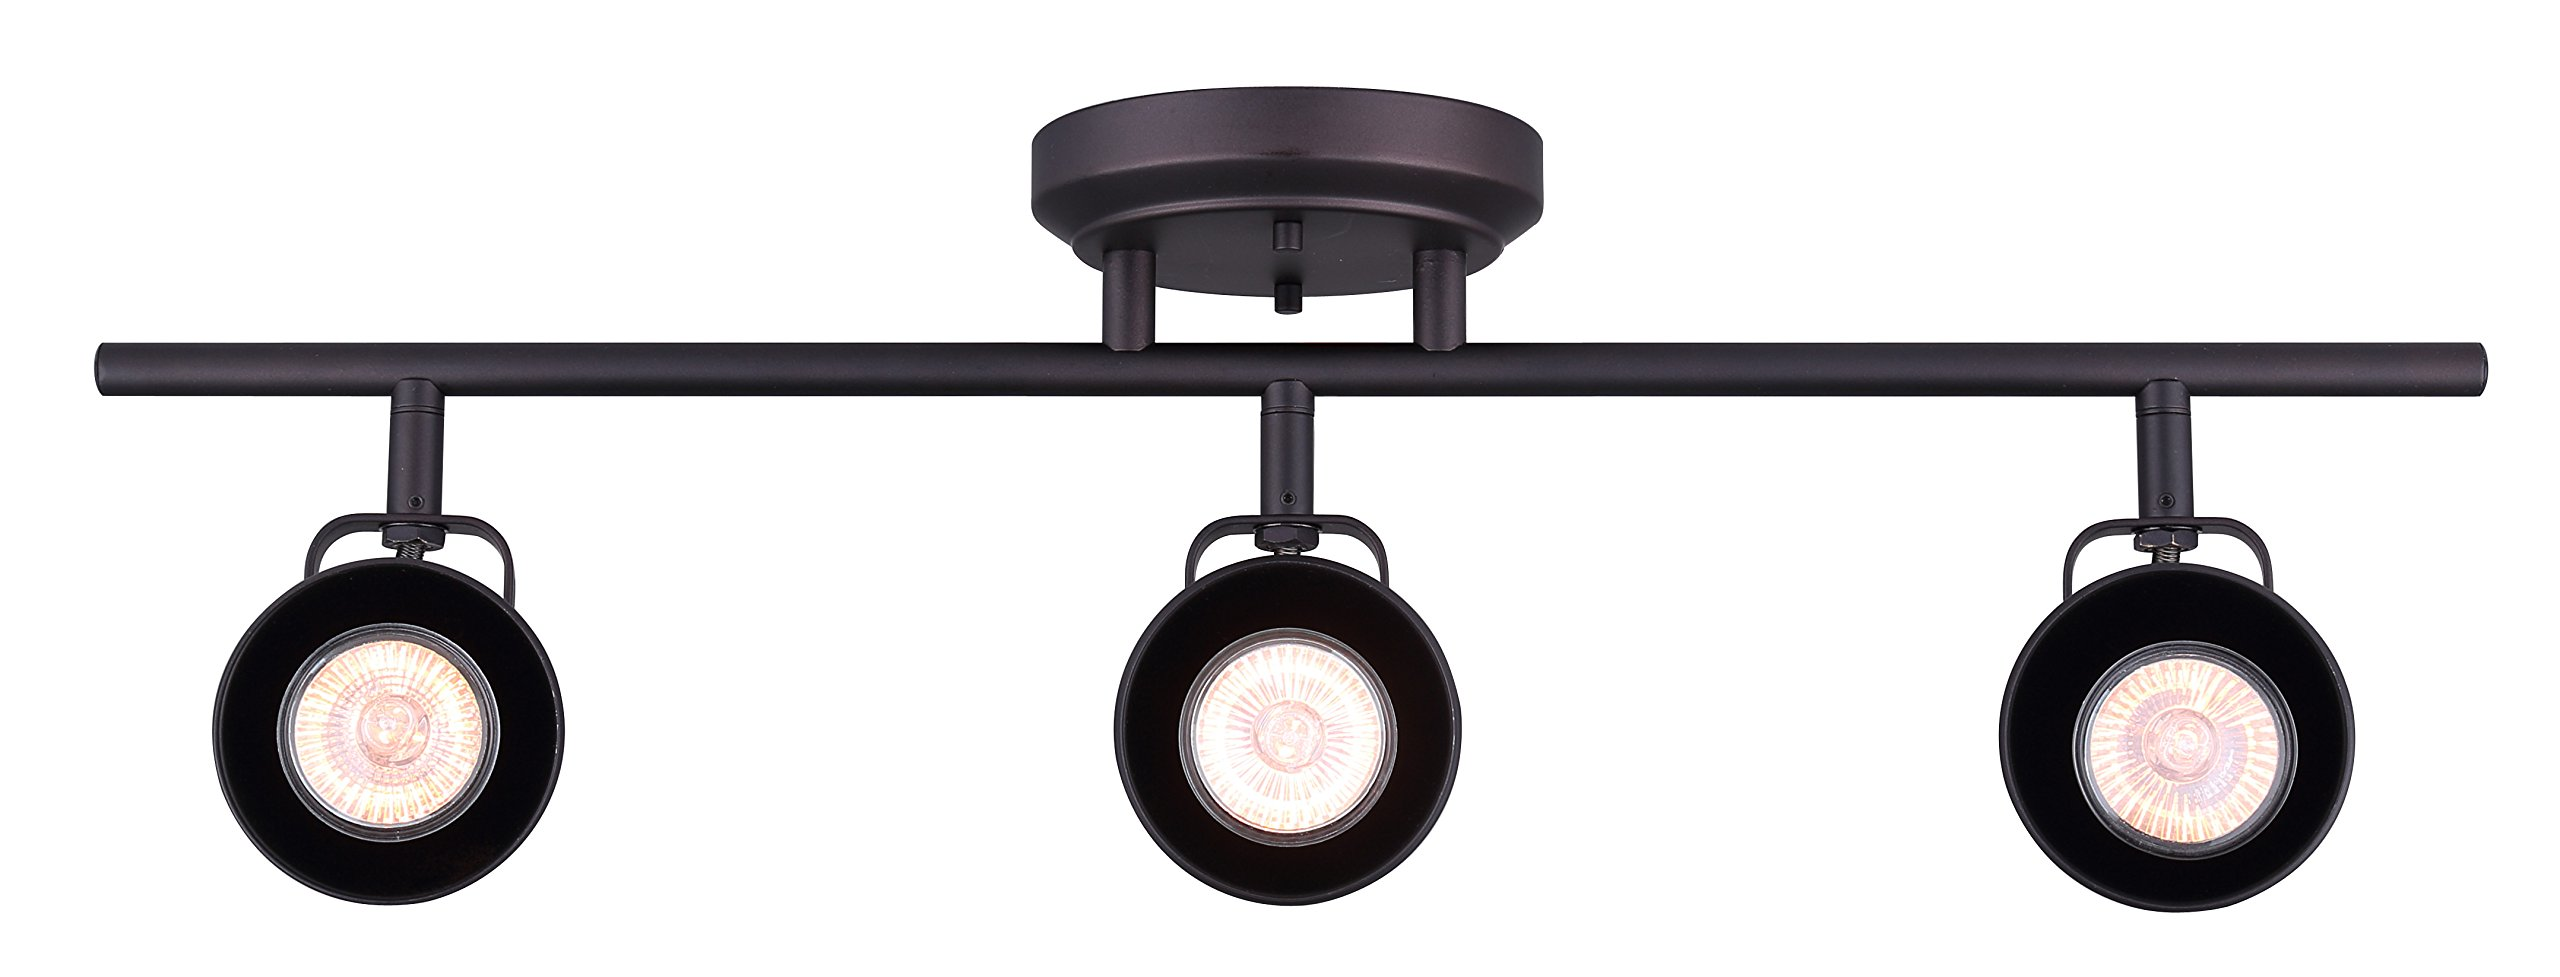 CANARM IT622A03ORB10 Ltd Polo 3 Light Track Rail Adjustable Heads, Oil Rubbed Bronze by Canarm